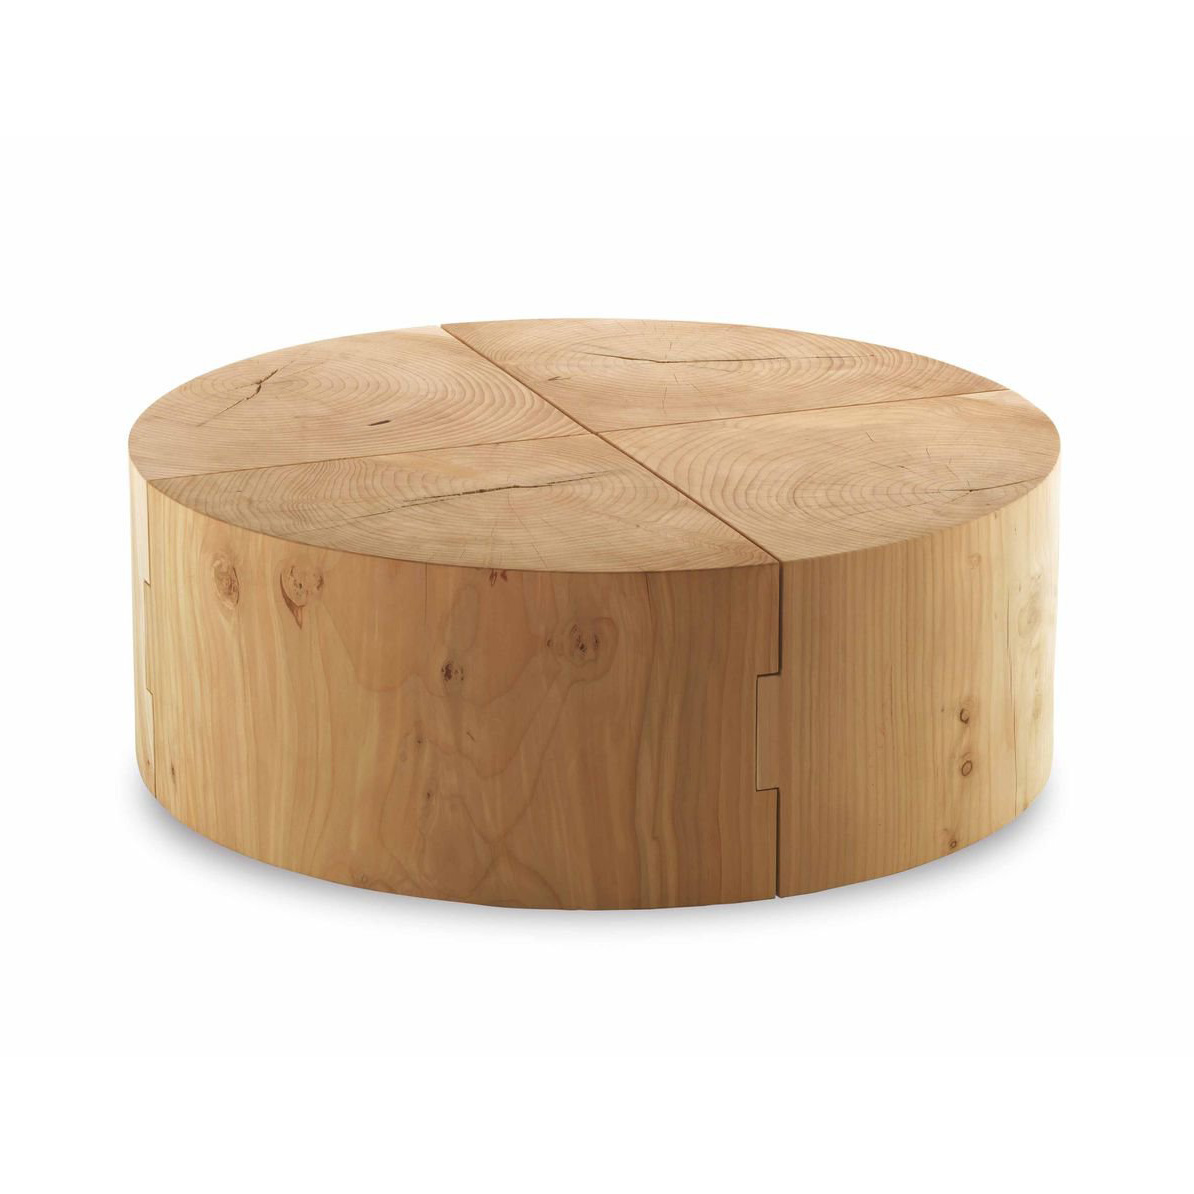 Eco Block end table from Riva 1920, designed by C.R. & S. Riva 1920